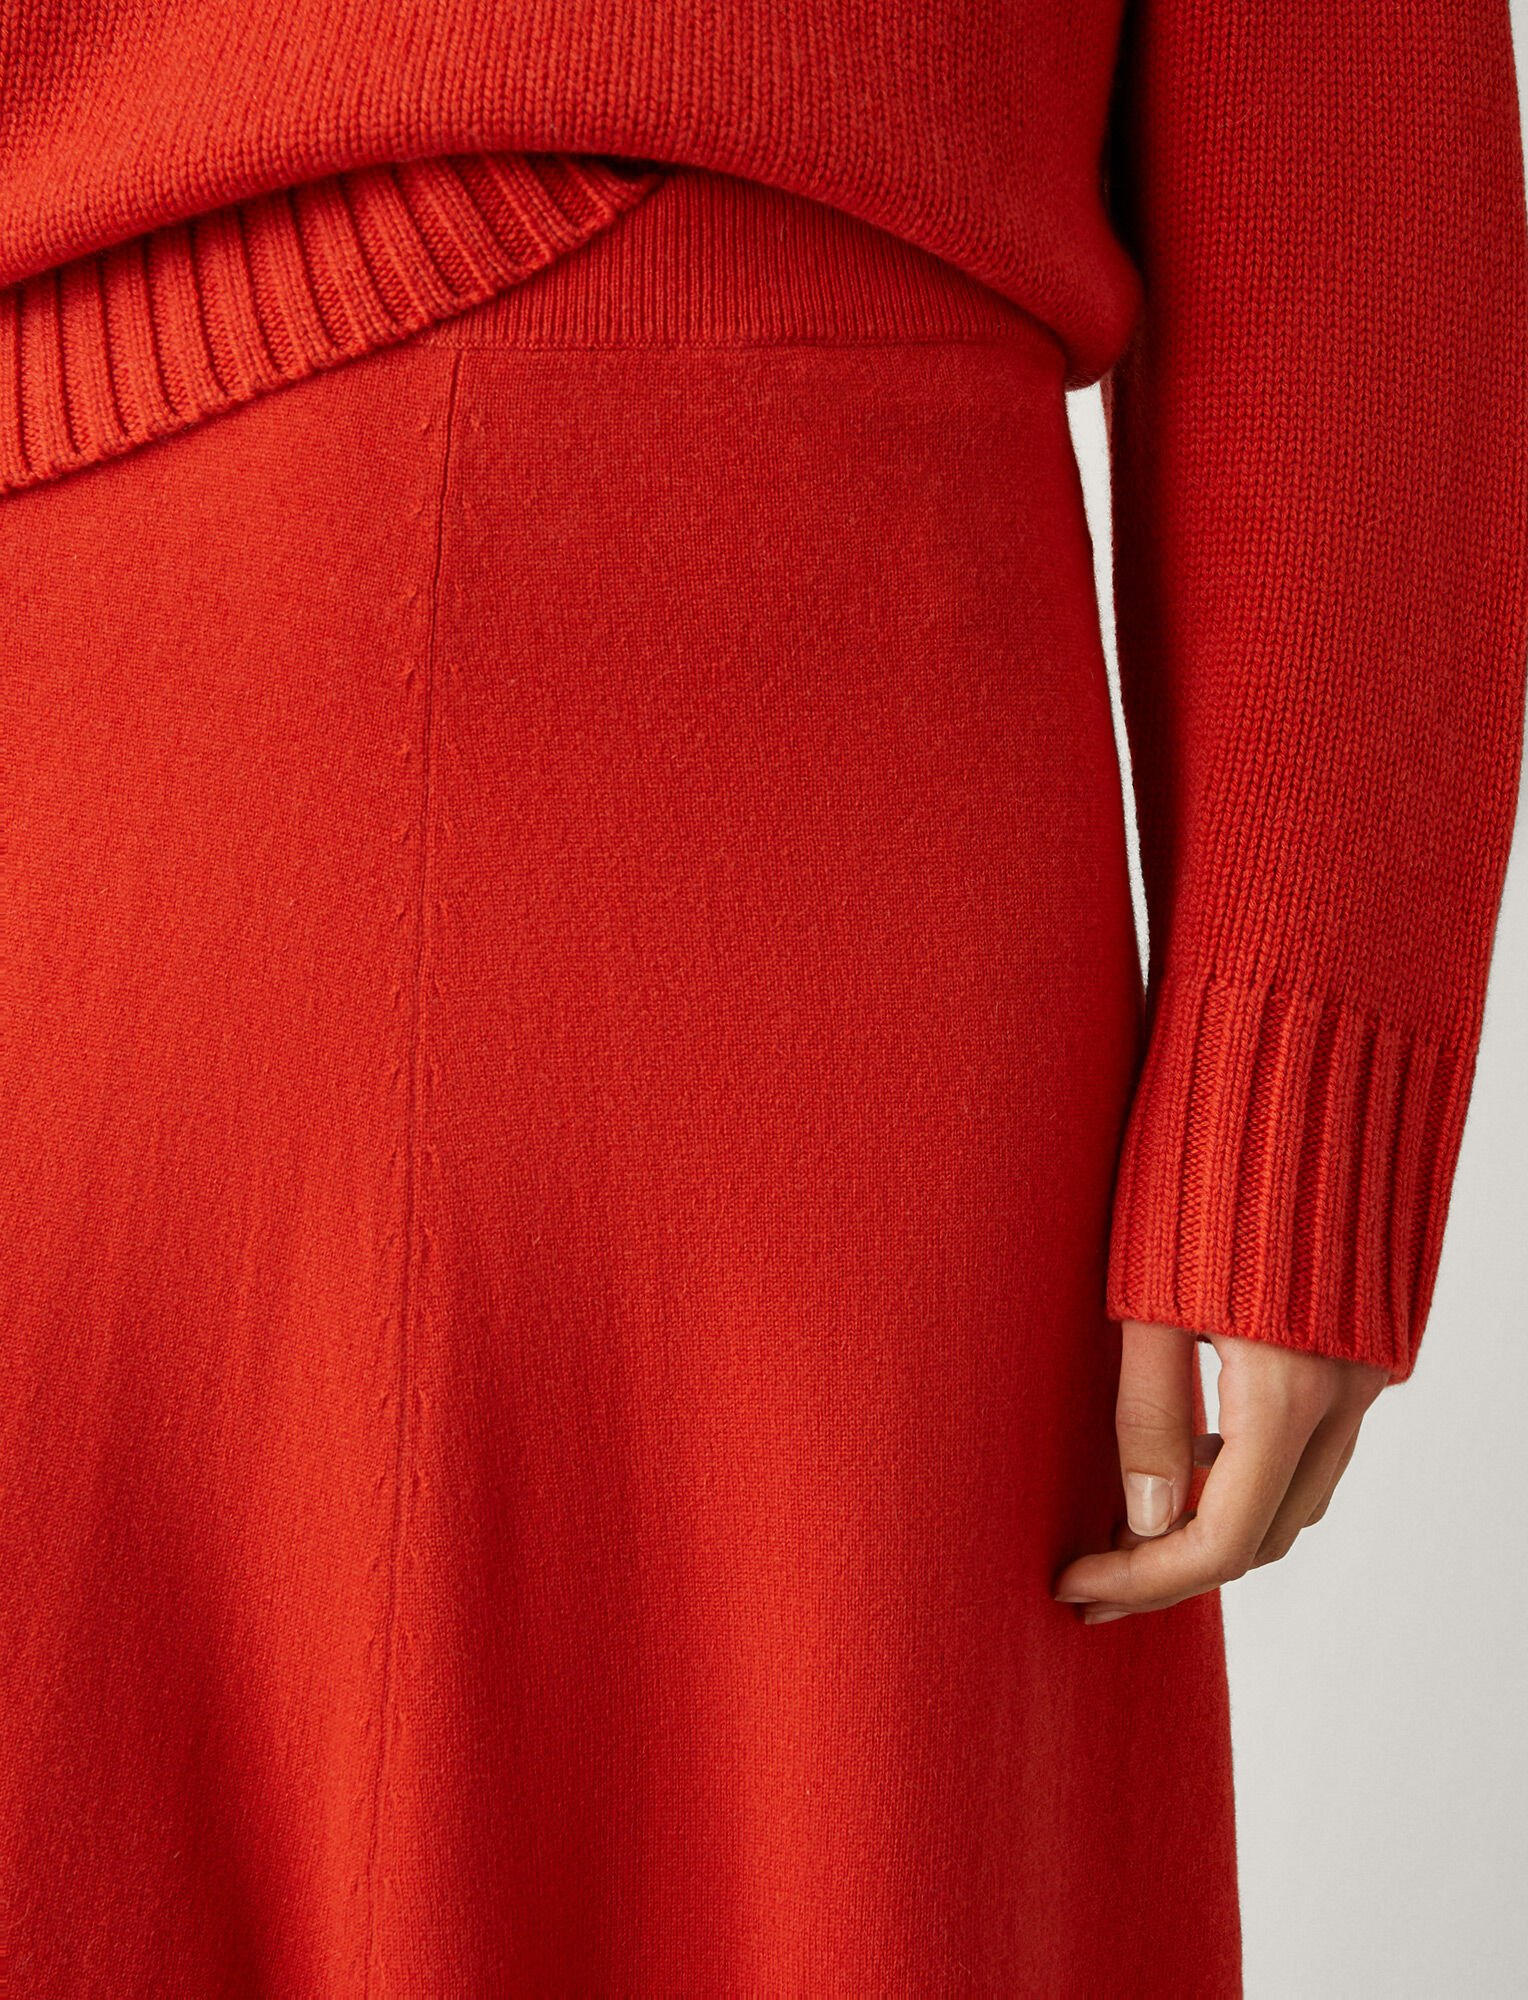 Joseph, Wool Cashmere Knit Skirt, in DARK ORANGE